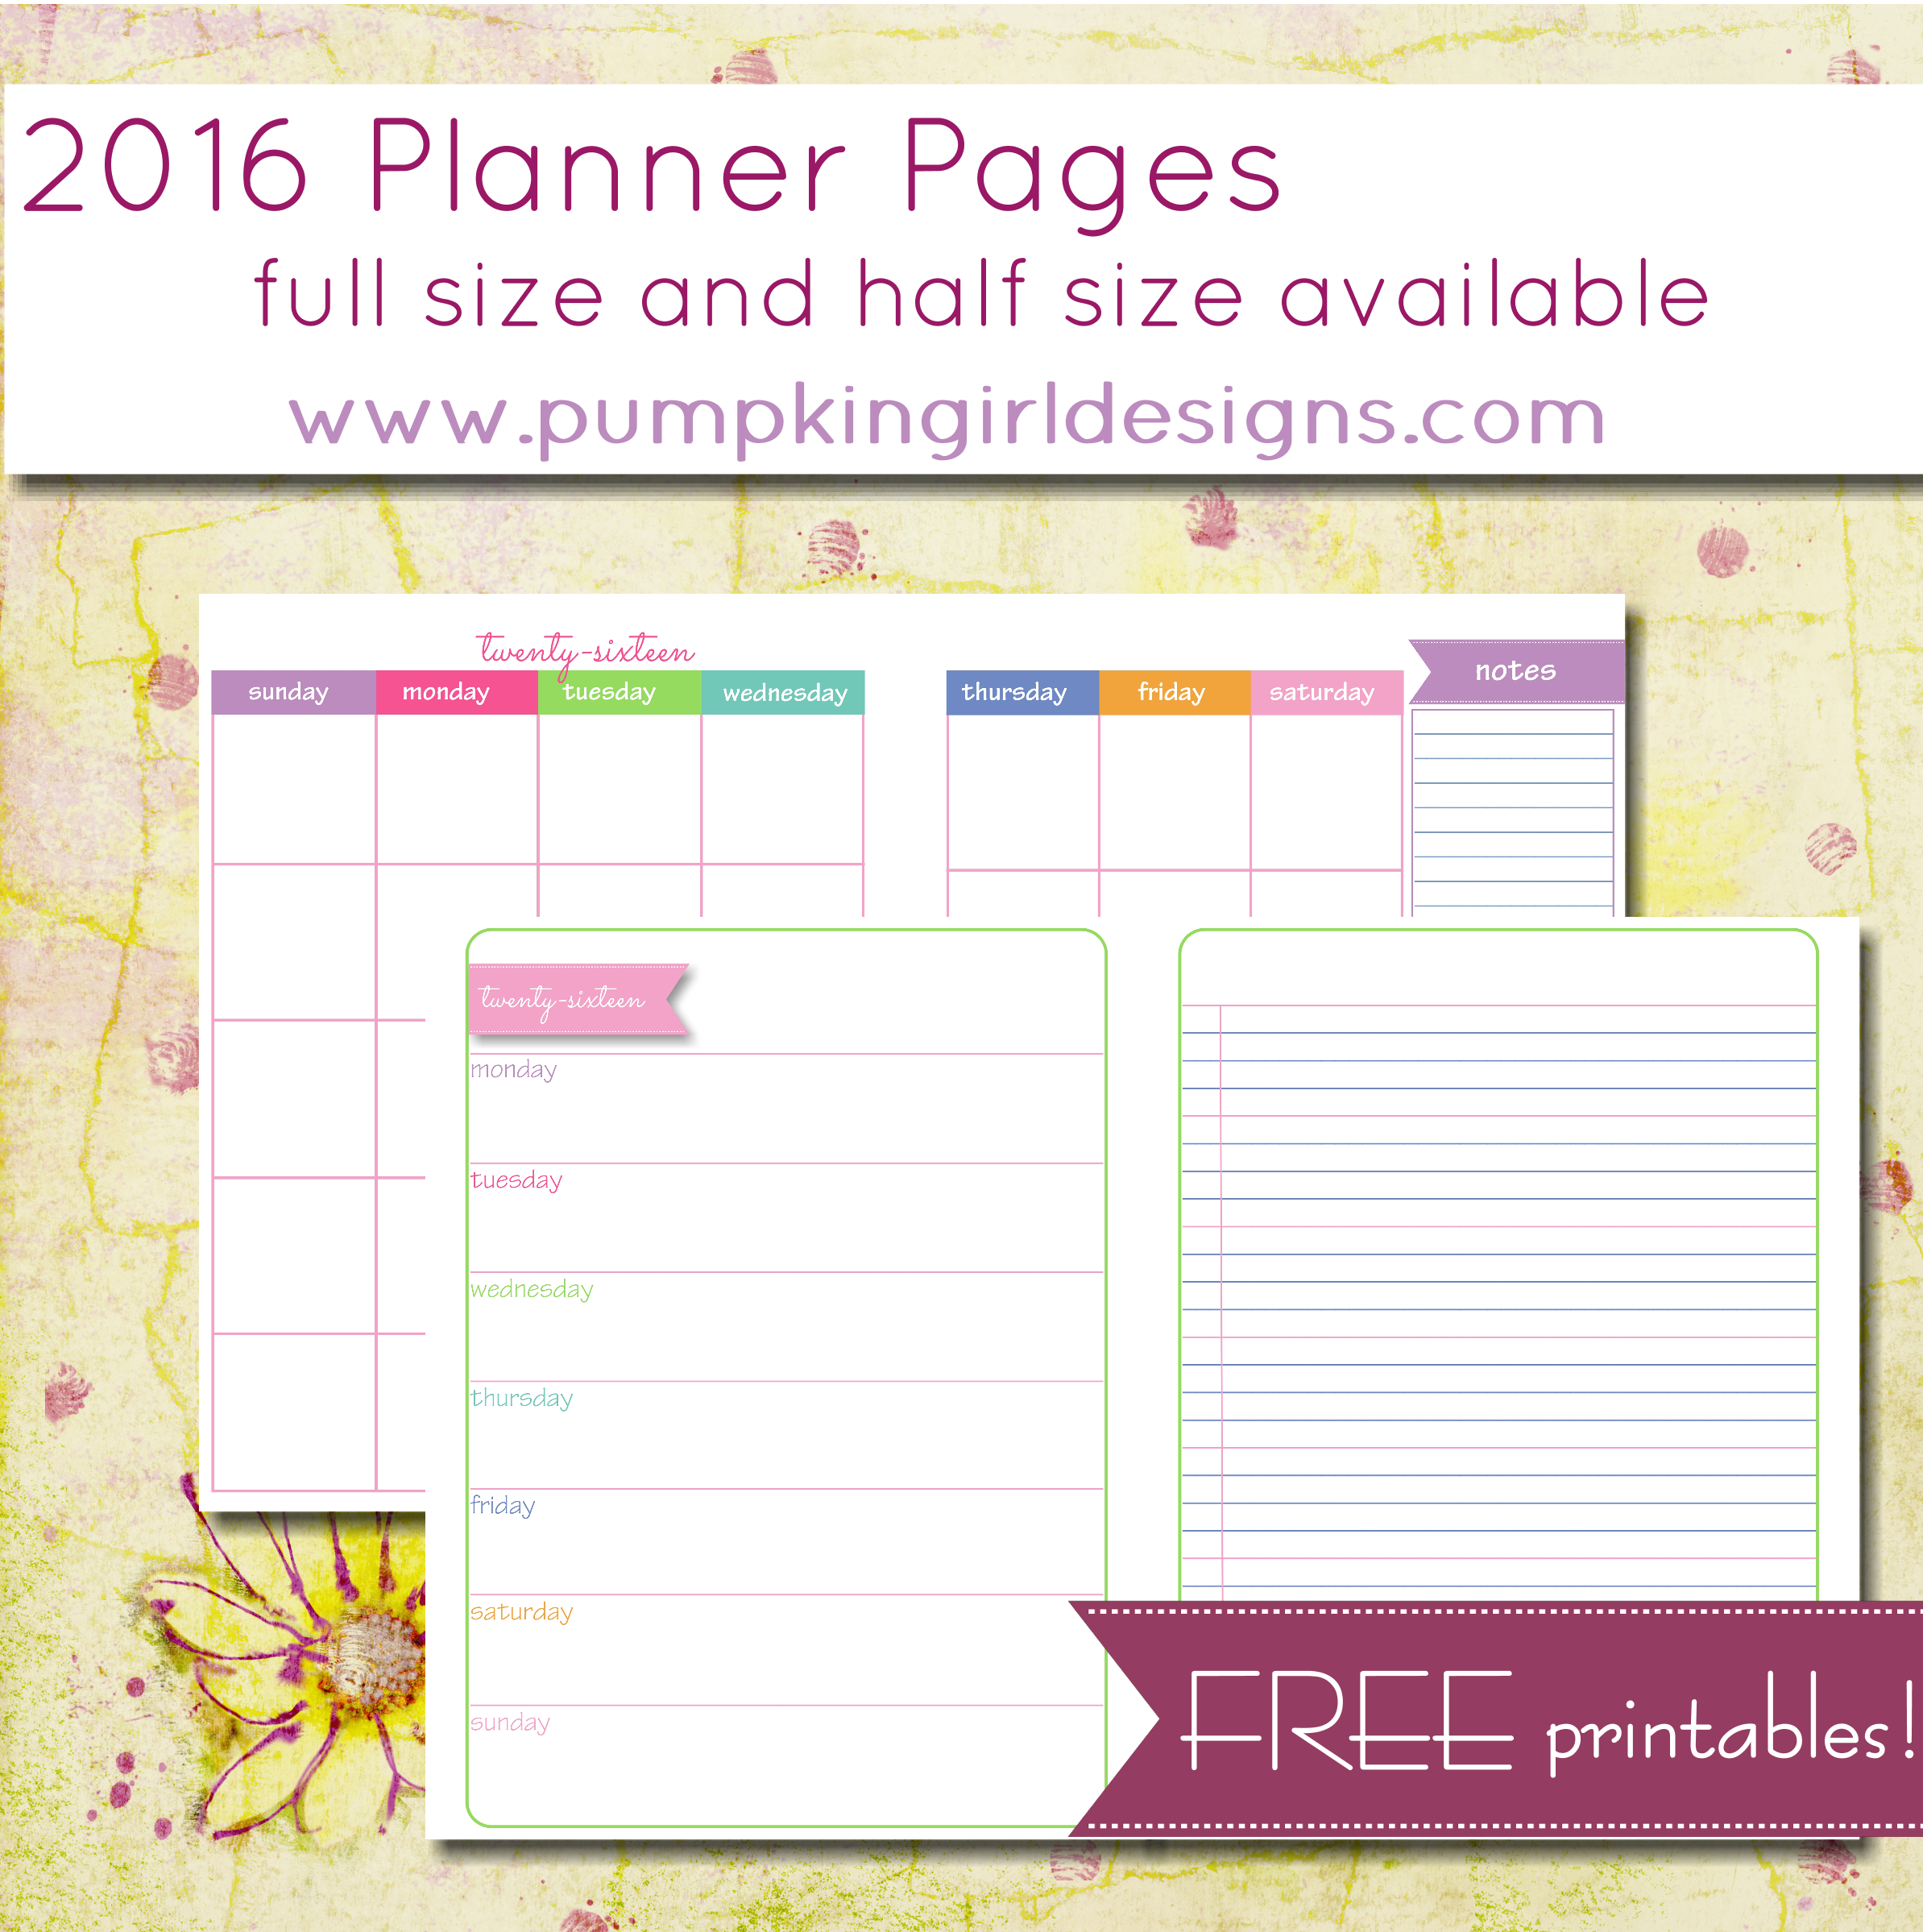 This is a photo of Gratifying Planner Pages Printable